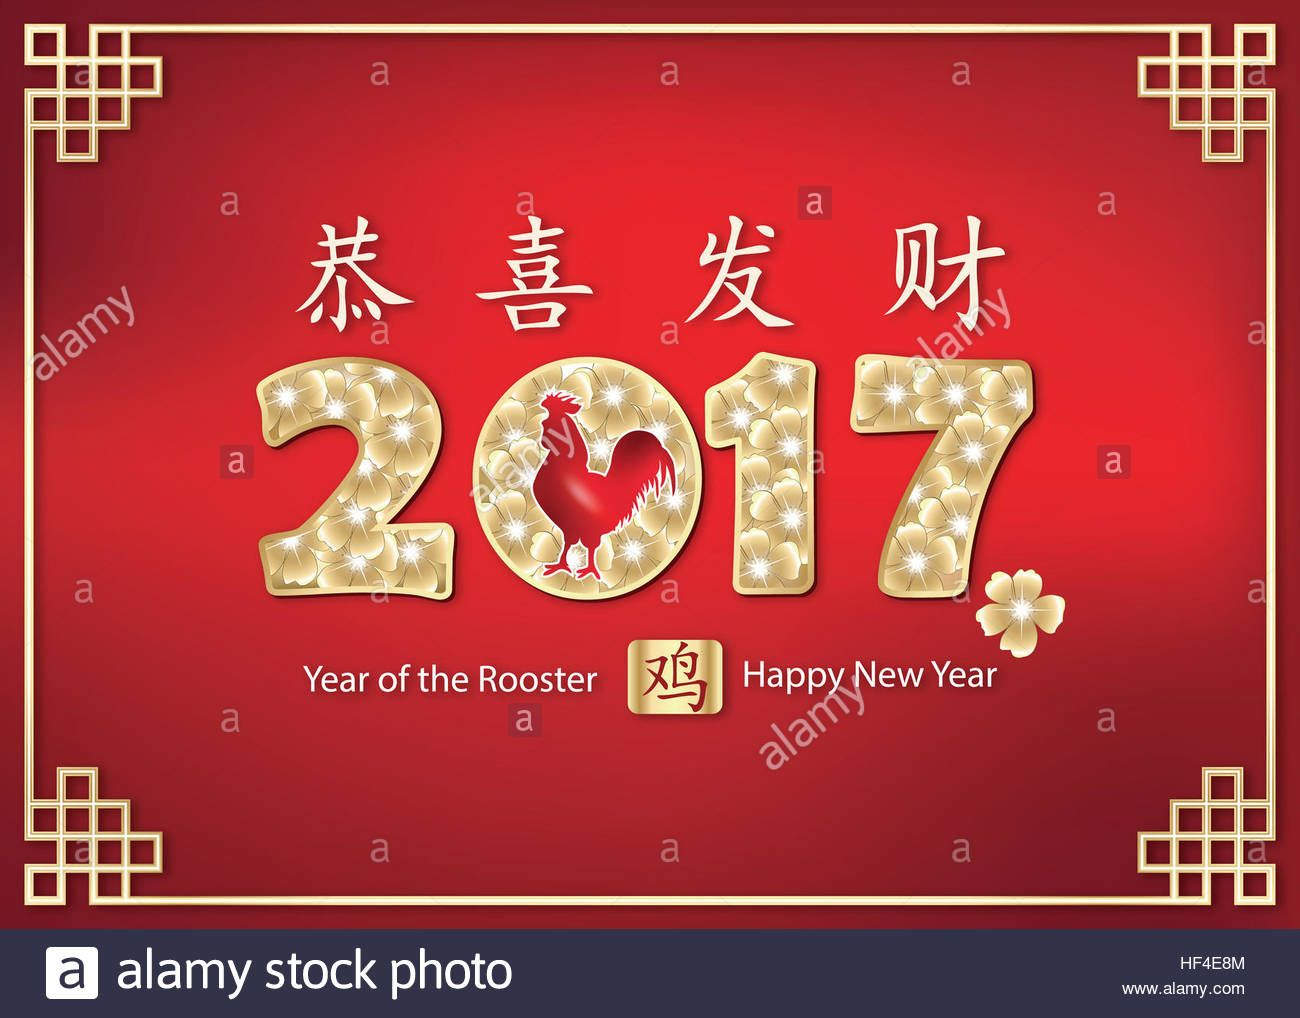 Chinese new year of the rooster 2017 printable corporate chinese new year of the rooster 2017 printable corporate greeting card chinese characters kristyandbryce Images